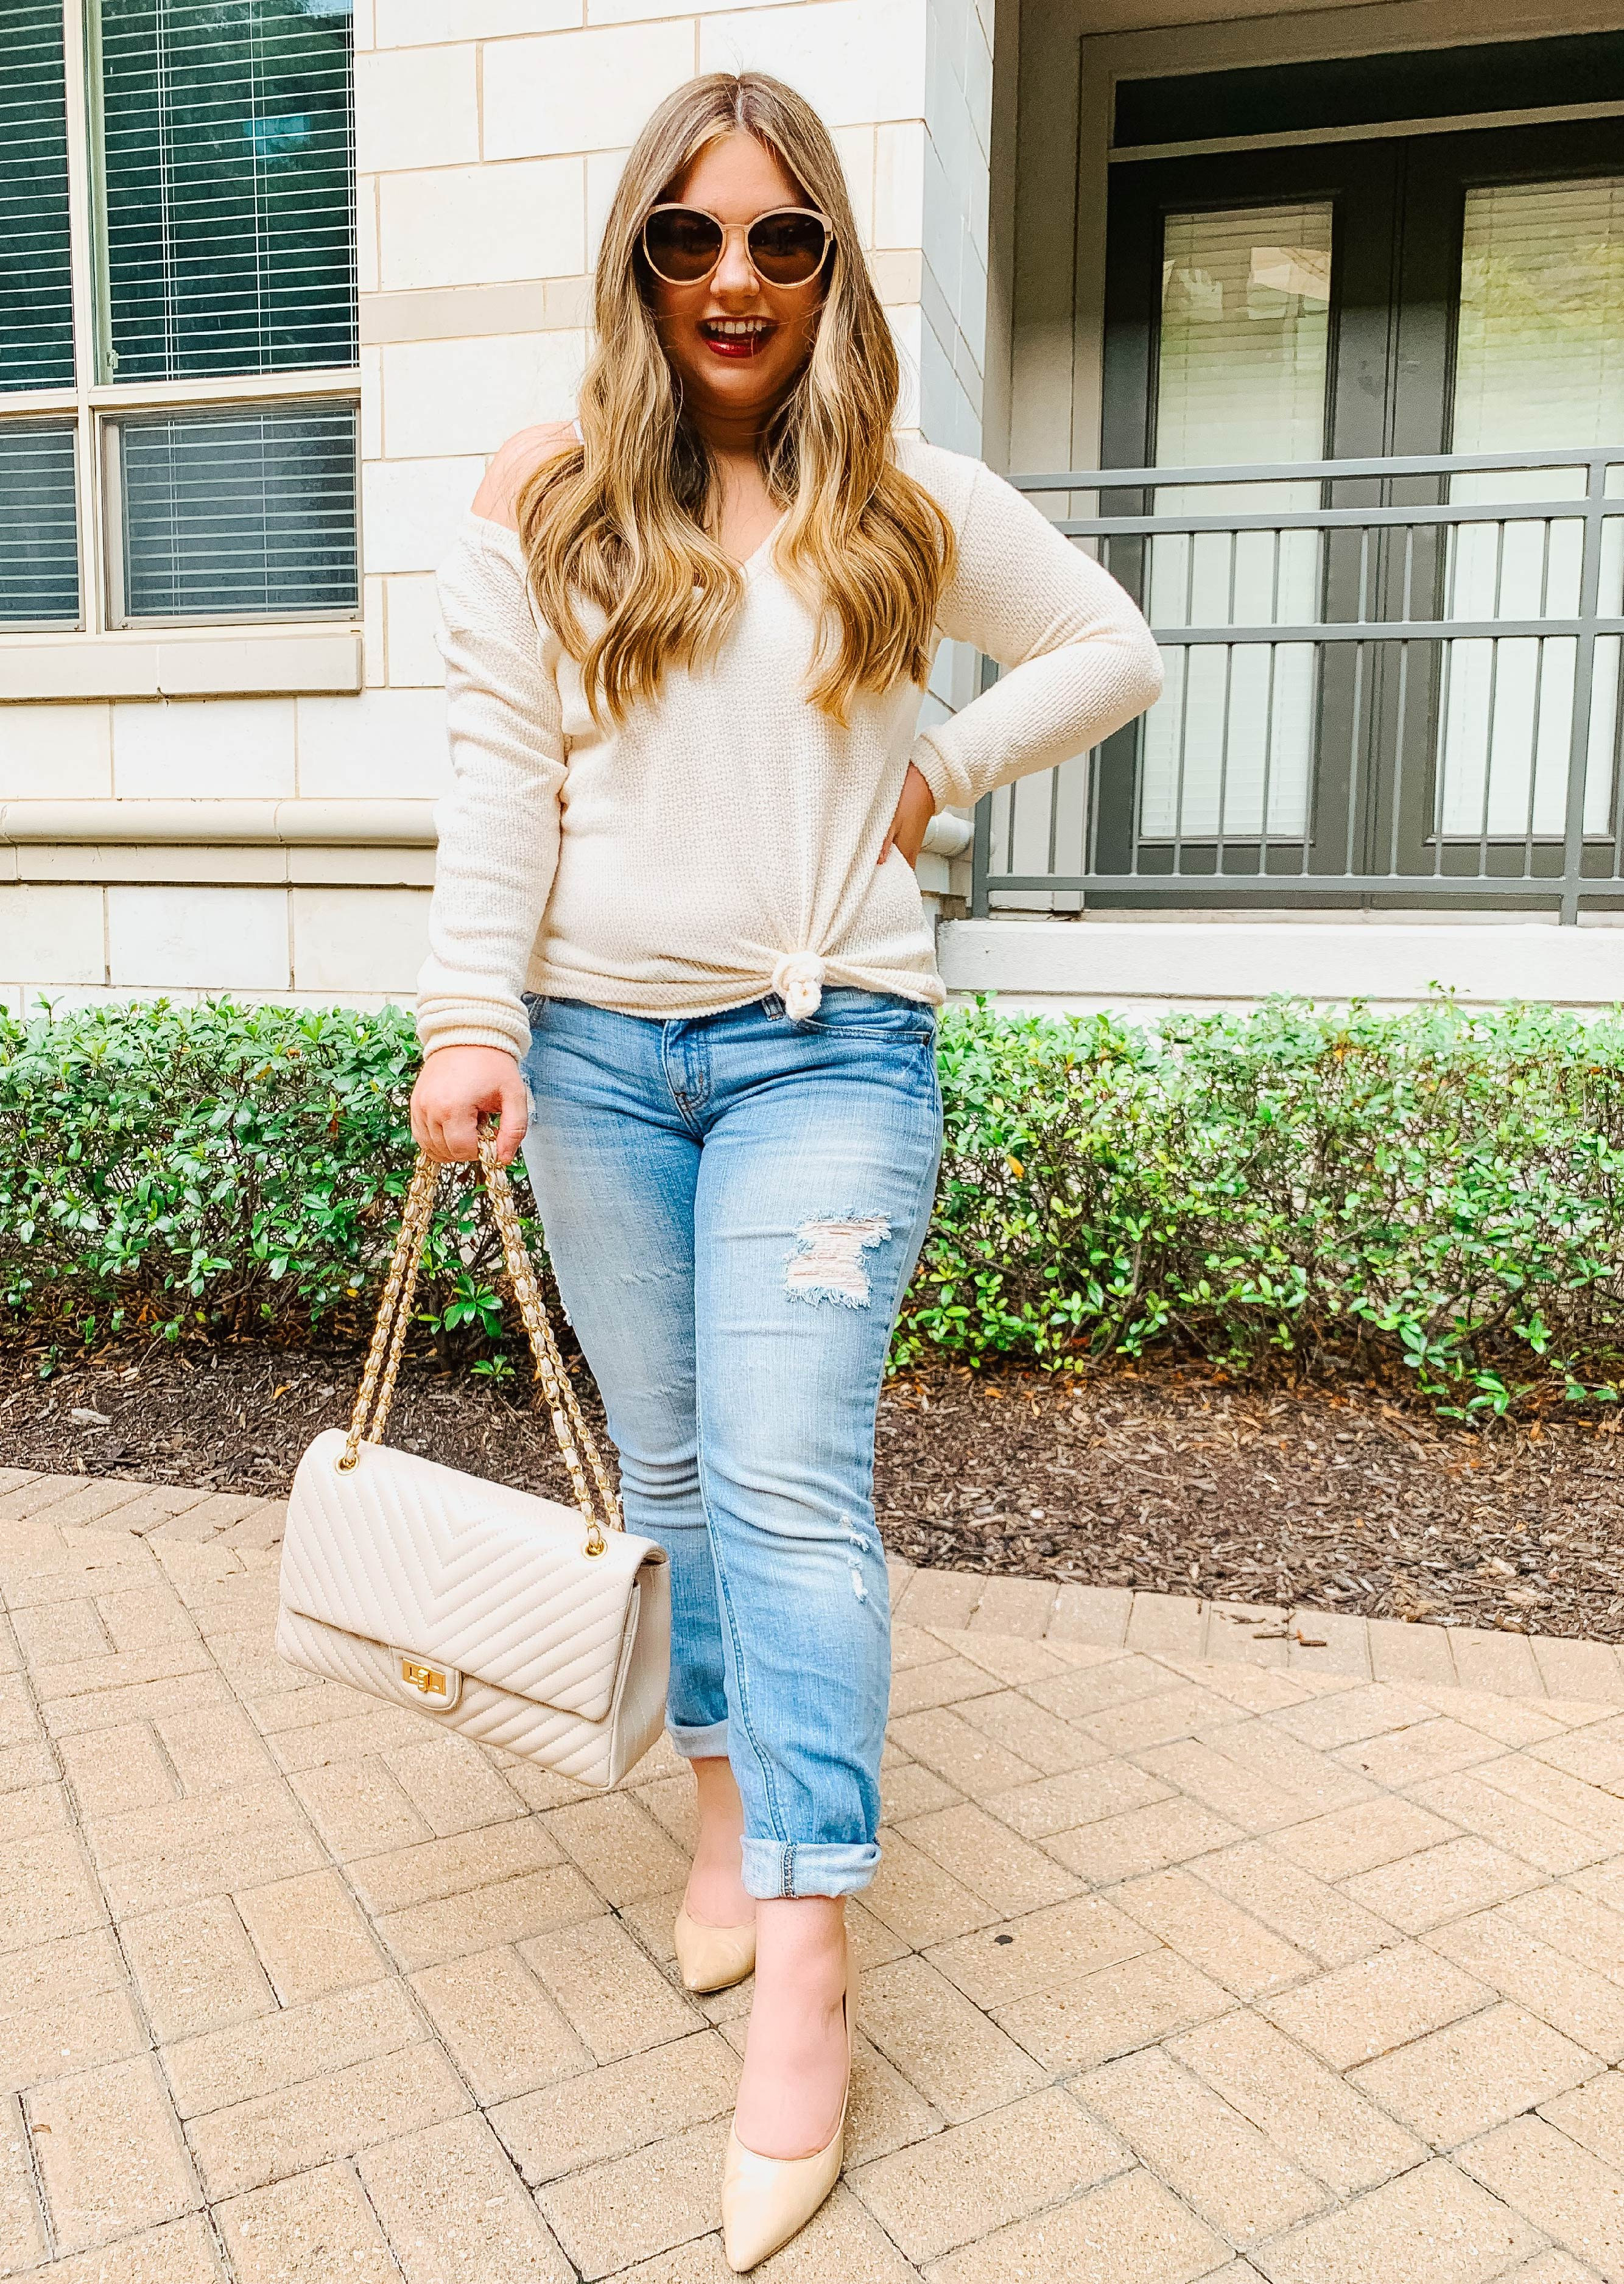 Look 2 - Cream sweater tied in a side front knot, a little off the shoulder. Paired with light wash denim, and cream purse with gold accents.